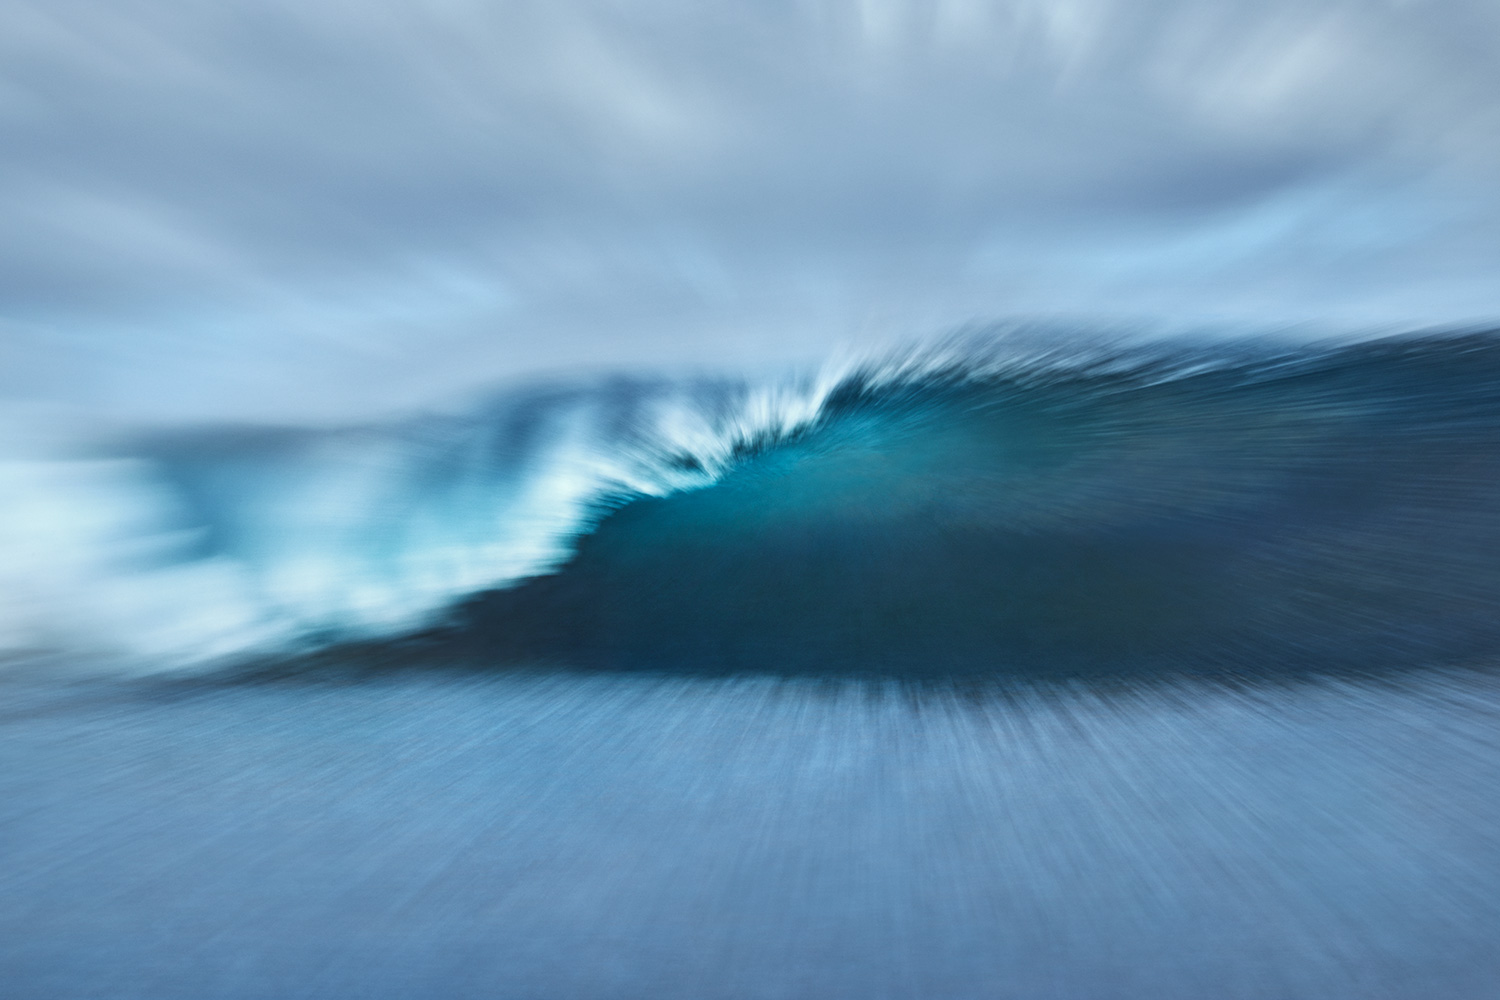 Teahupoo 1 giclee print on archival paper, limited edition of 7 60 x 90 cm